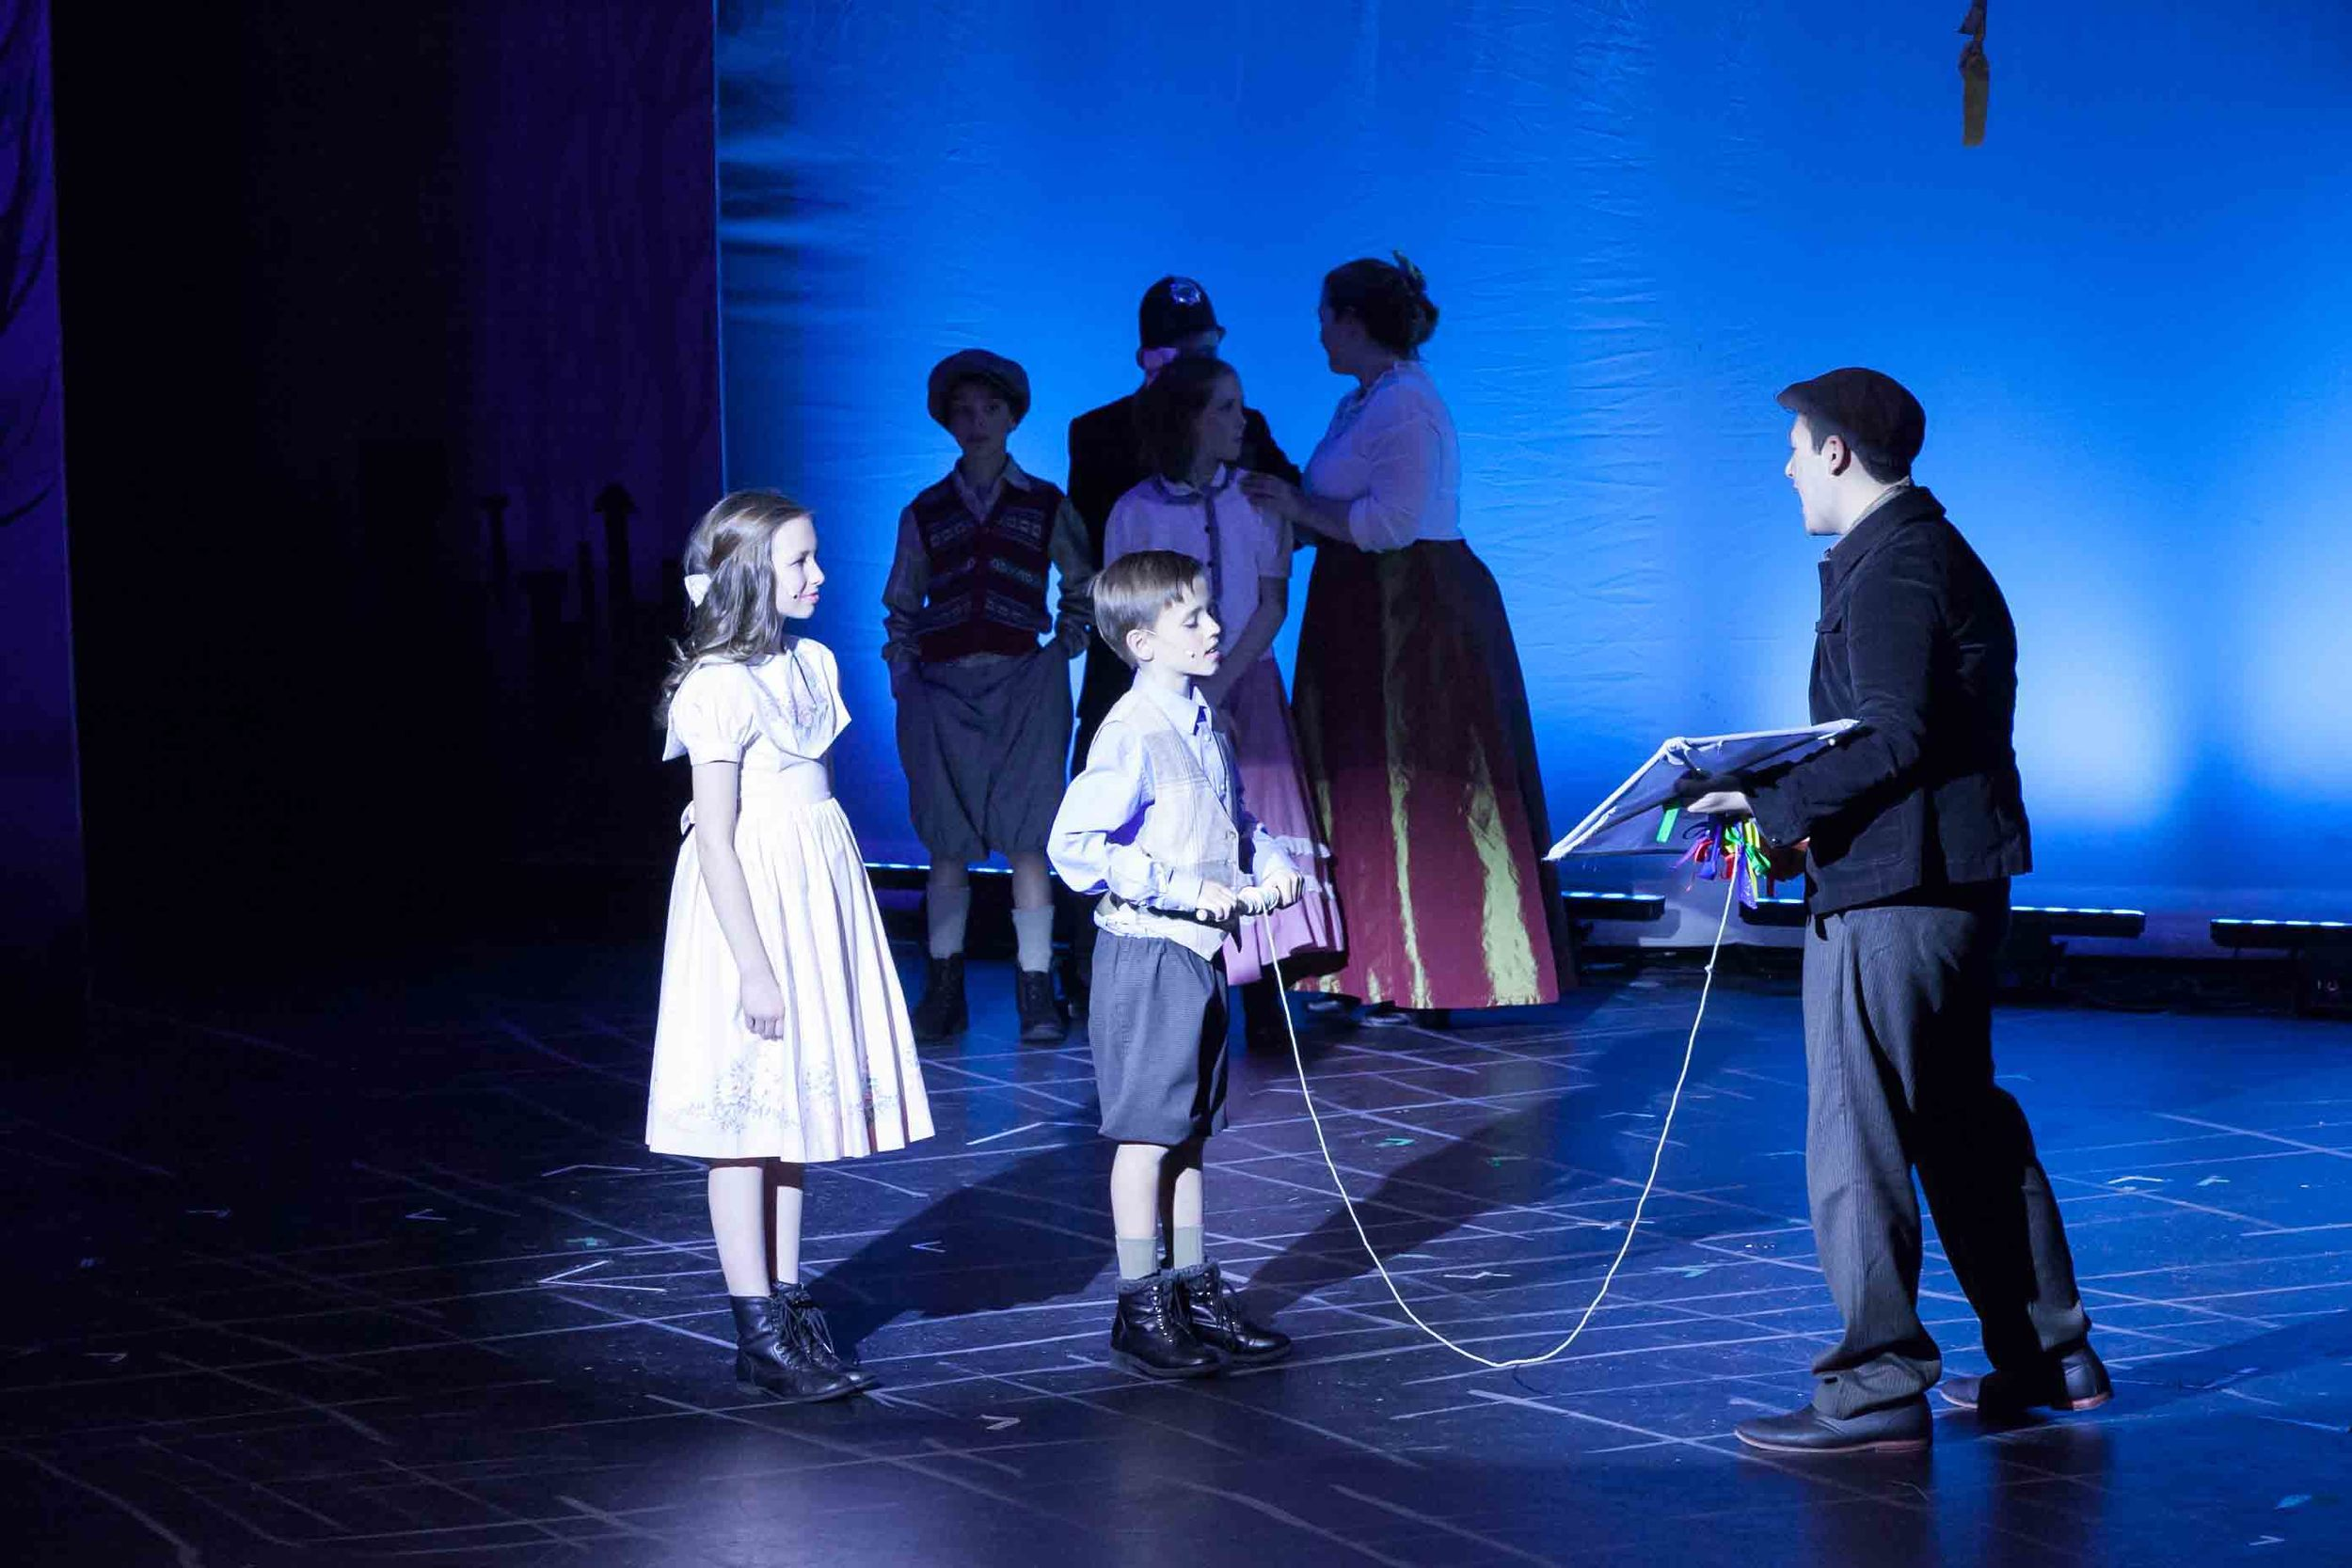 2-4-16 Mary Poppins Proper Cast 0320.jpg